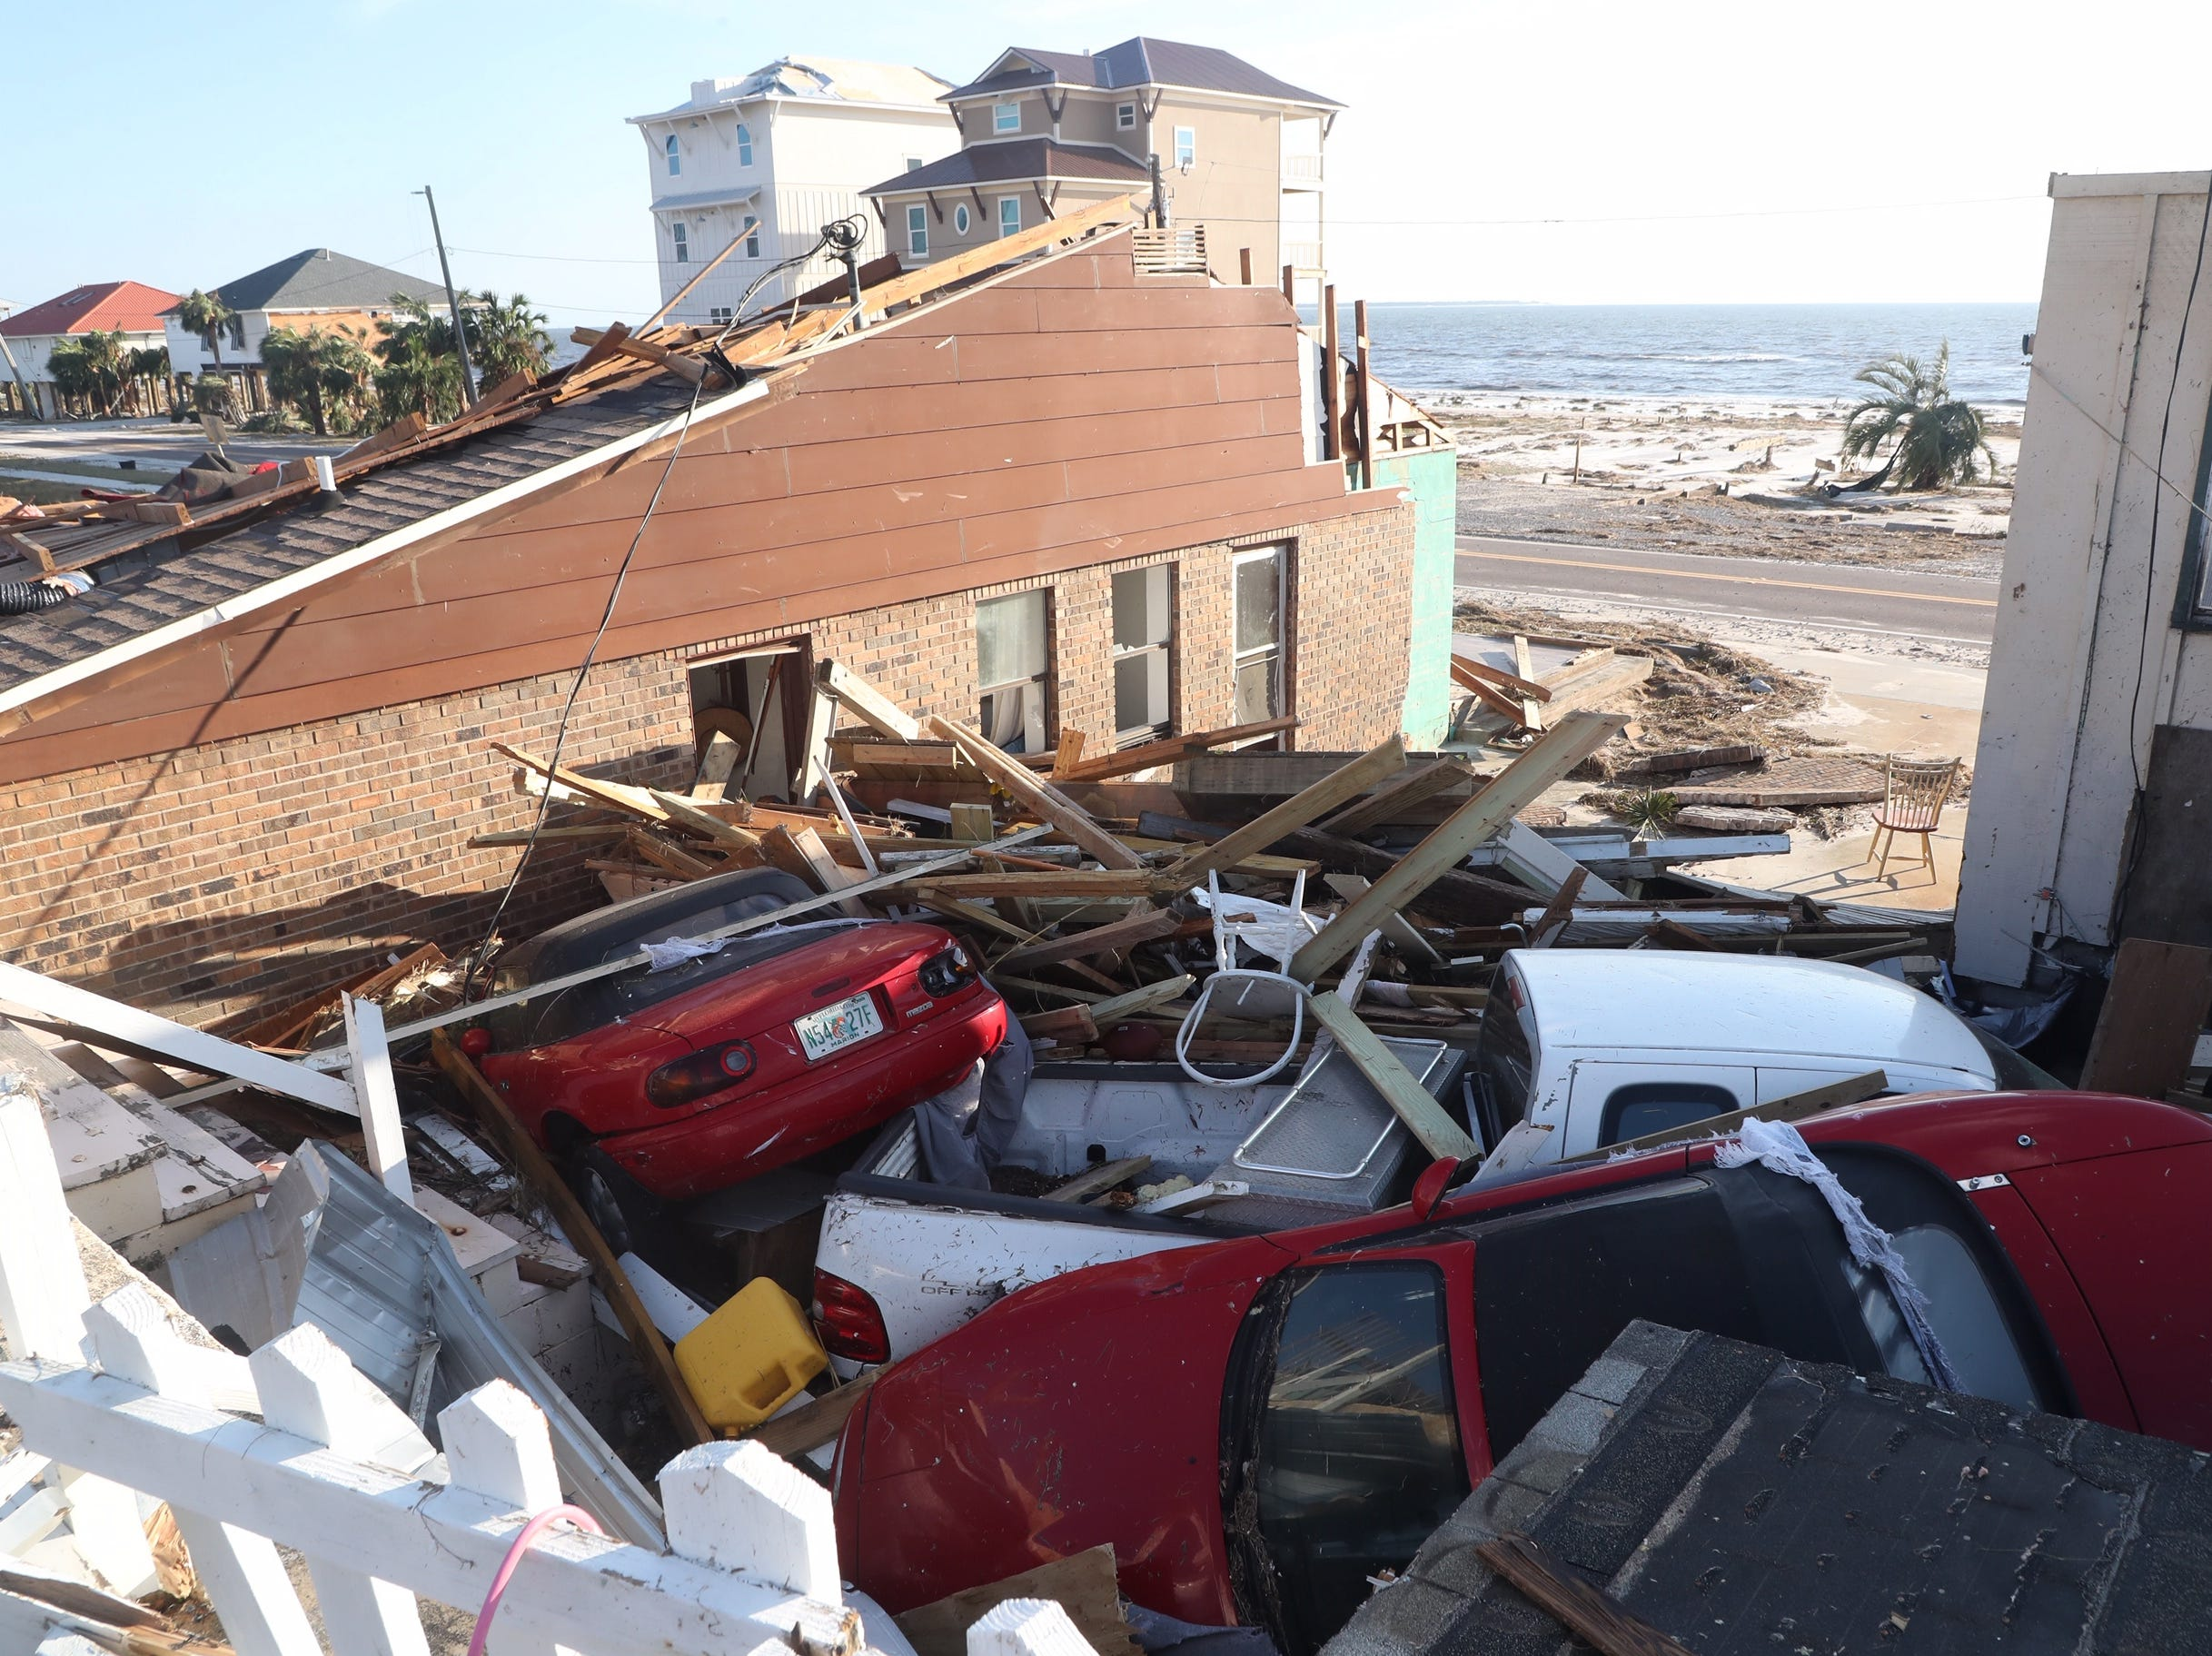 Damaged homes and cars in Beacon Hill, Fla. — just south of Mexico City where Hurricane Michael made landfall.